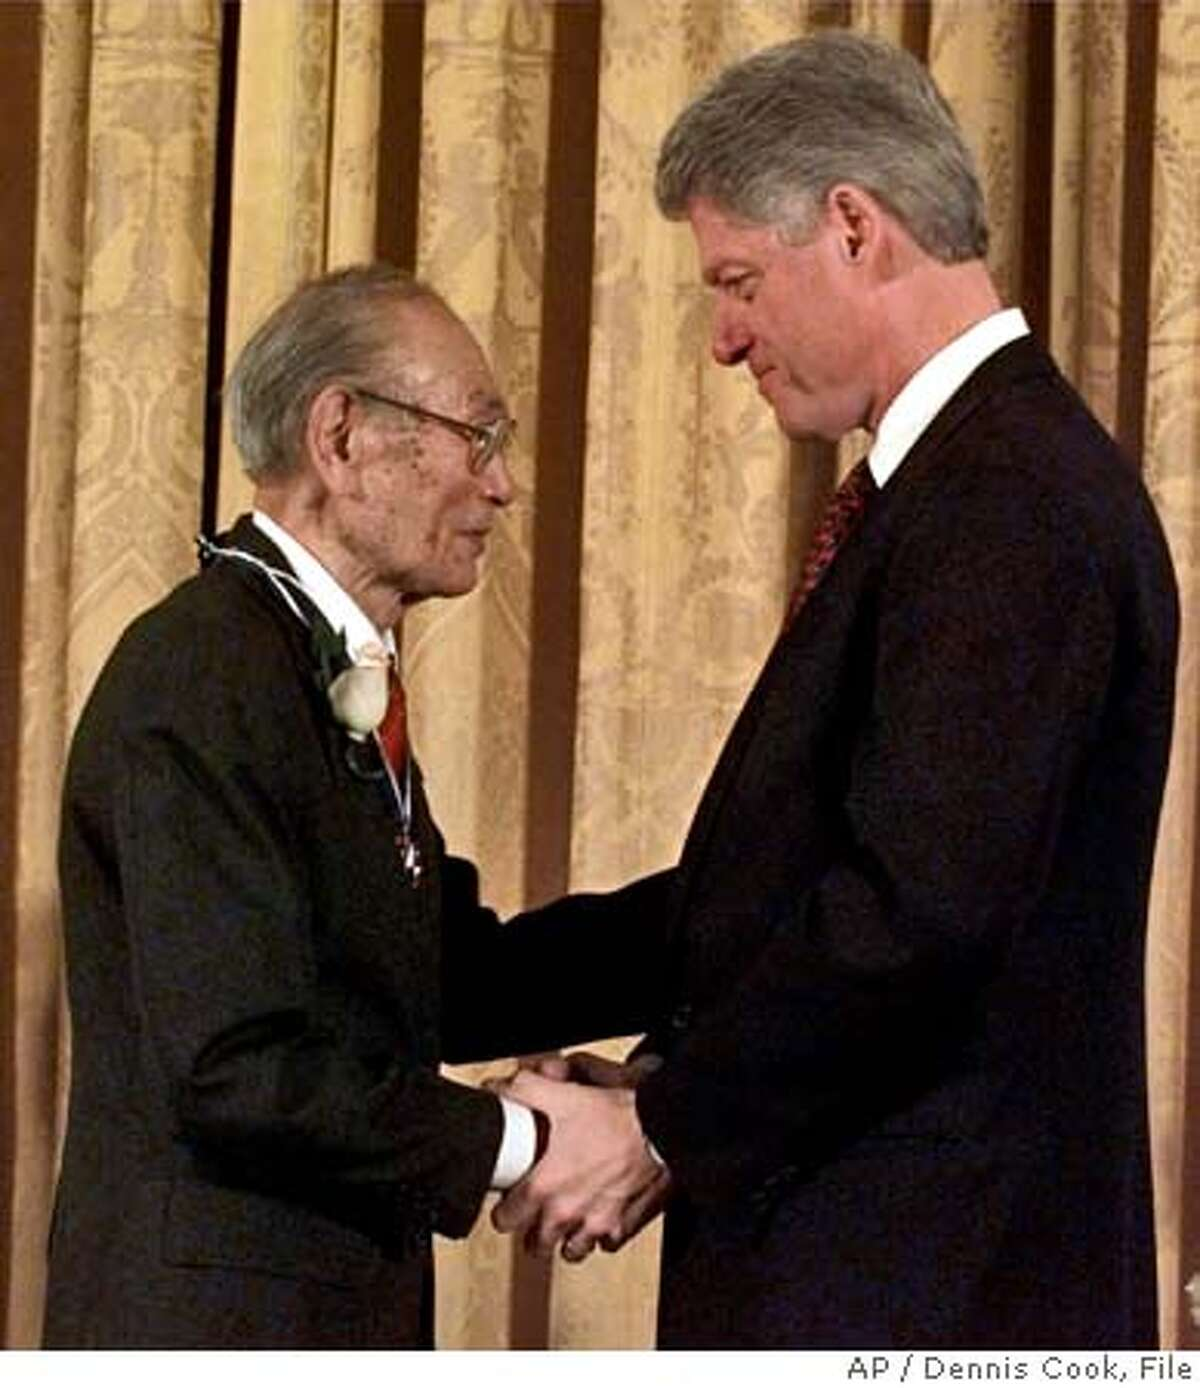 ** FILE ** President Clinton, right, presents Fred Korematsu with a Presidential Medal of Freedom during a ceremony at the White House in Washington in this Jan. 15, 1998 file photo. Korematsu, who unsuccessfully fought the order to be sent to a Japenese American internment camp during World War II, died Wednesday, March 30, 2005. He was 86. Korematsu died of respiratory illness at his daughter's home in Larkspur, said his attorney Dale Minami. (AP Photo/Dennis Cook, file) A JAN. 15, 1998 FILE PHOTO